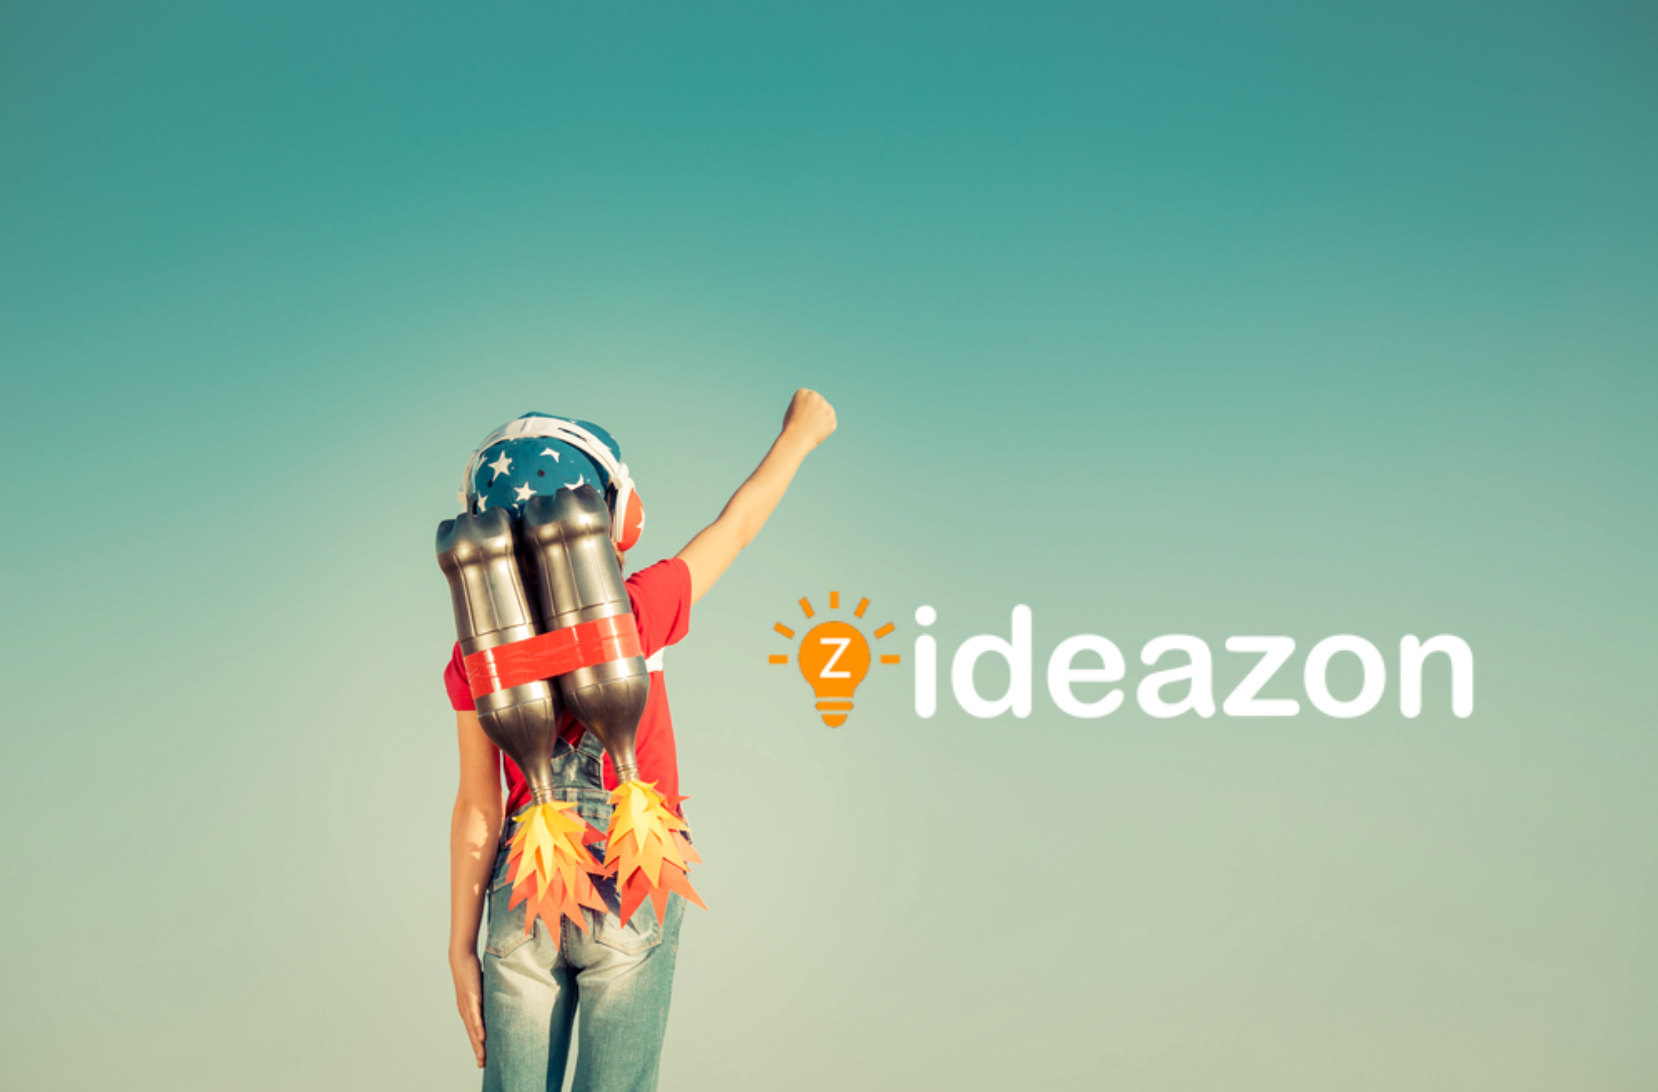 Ideazon Has The Best Tips For Making Your Crowdfunding Project Stand Out